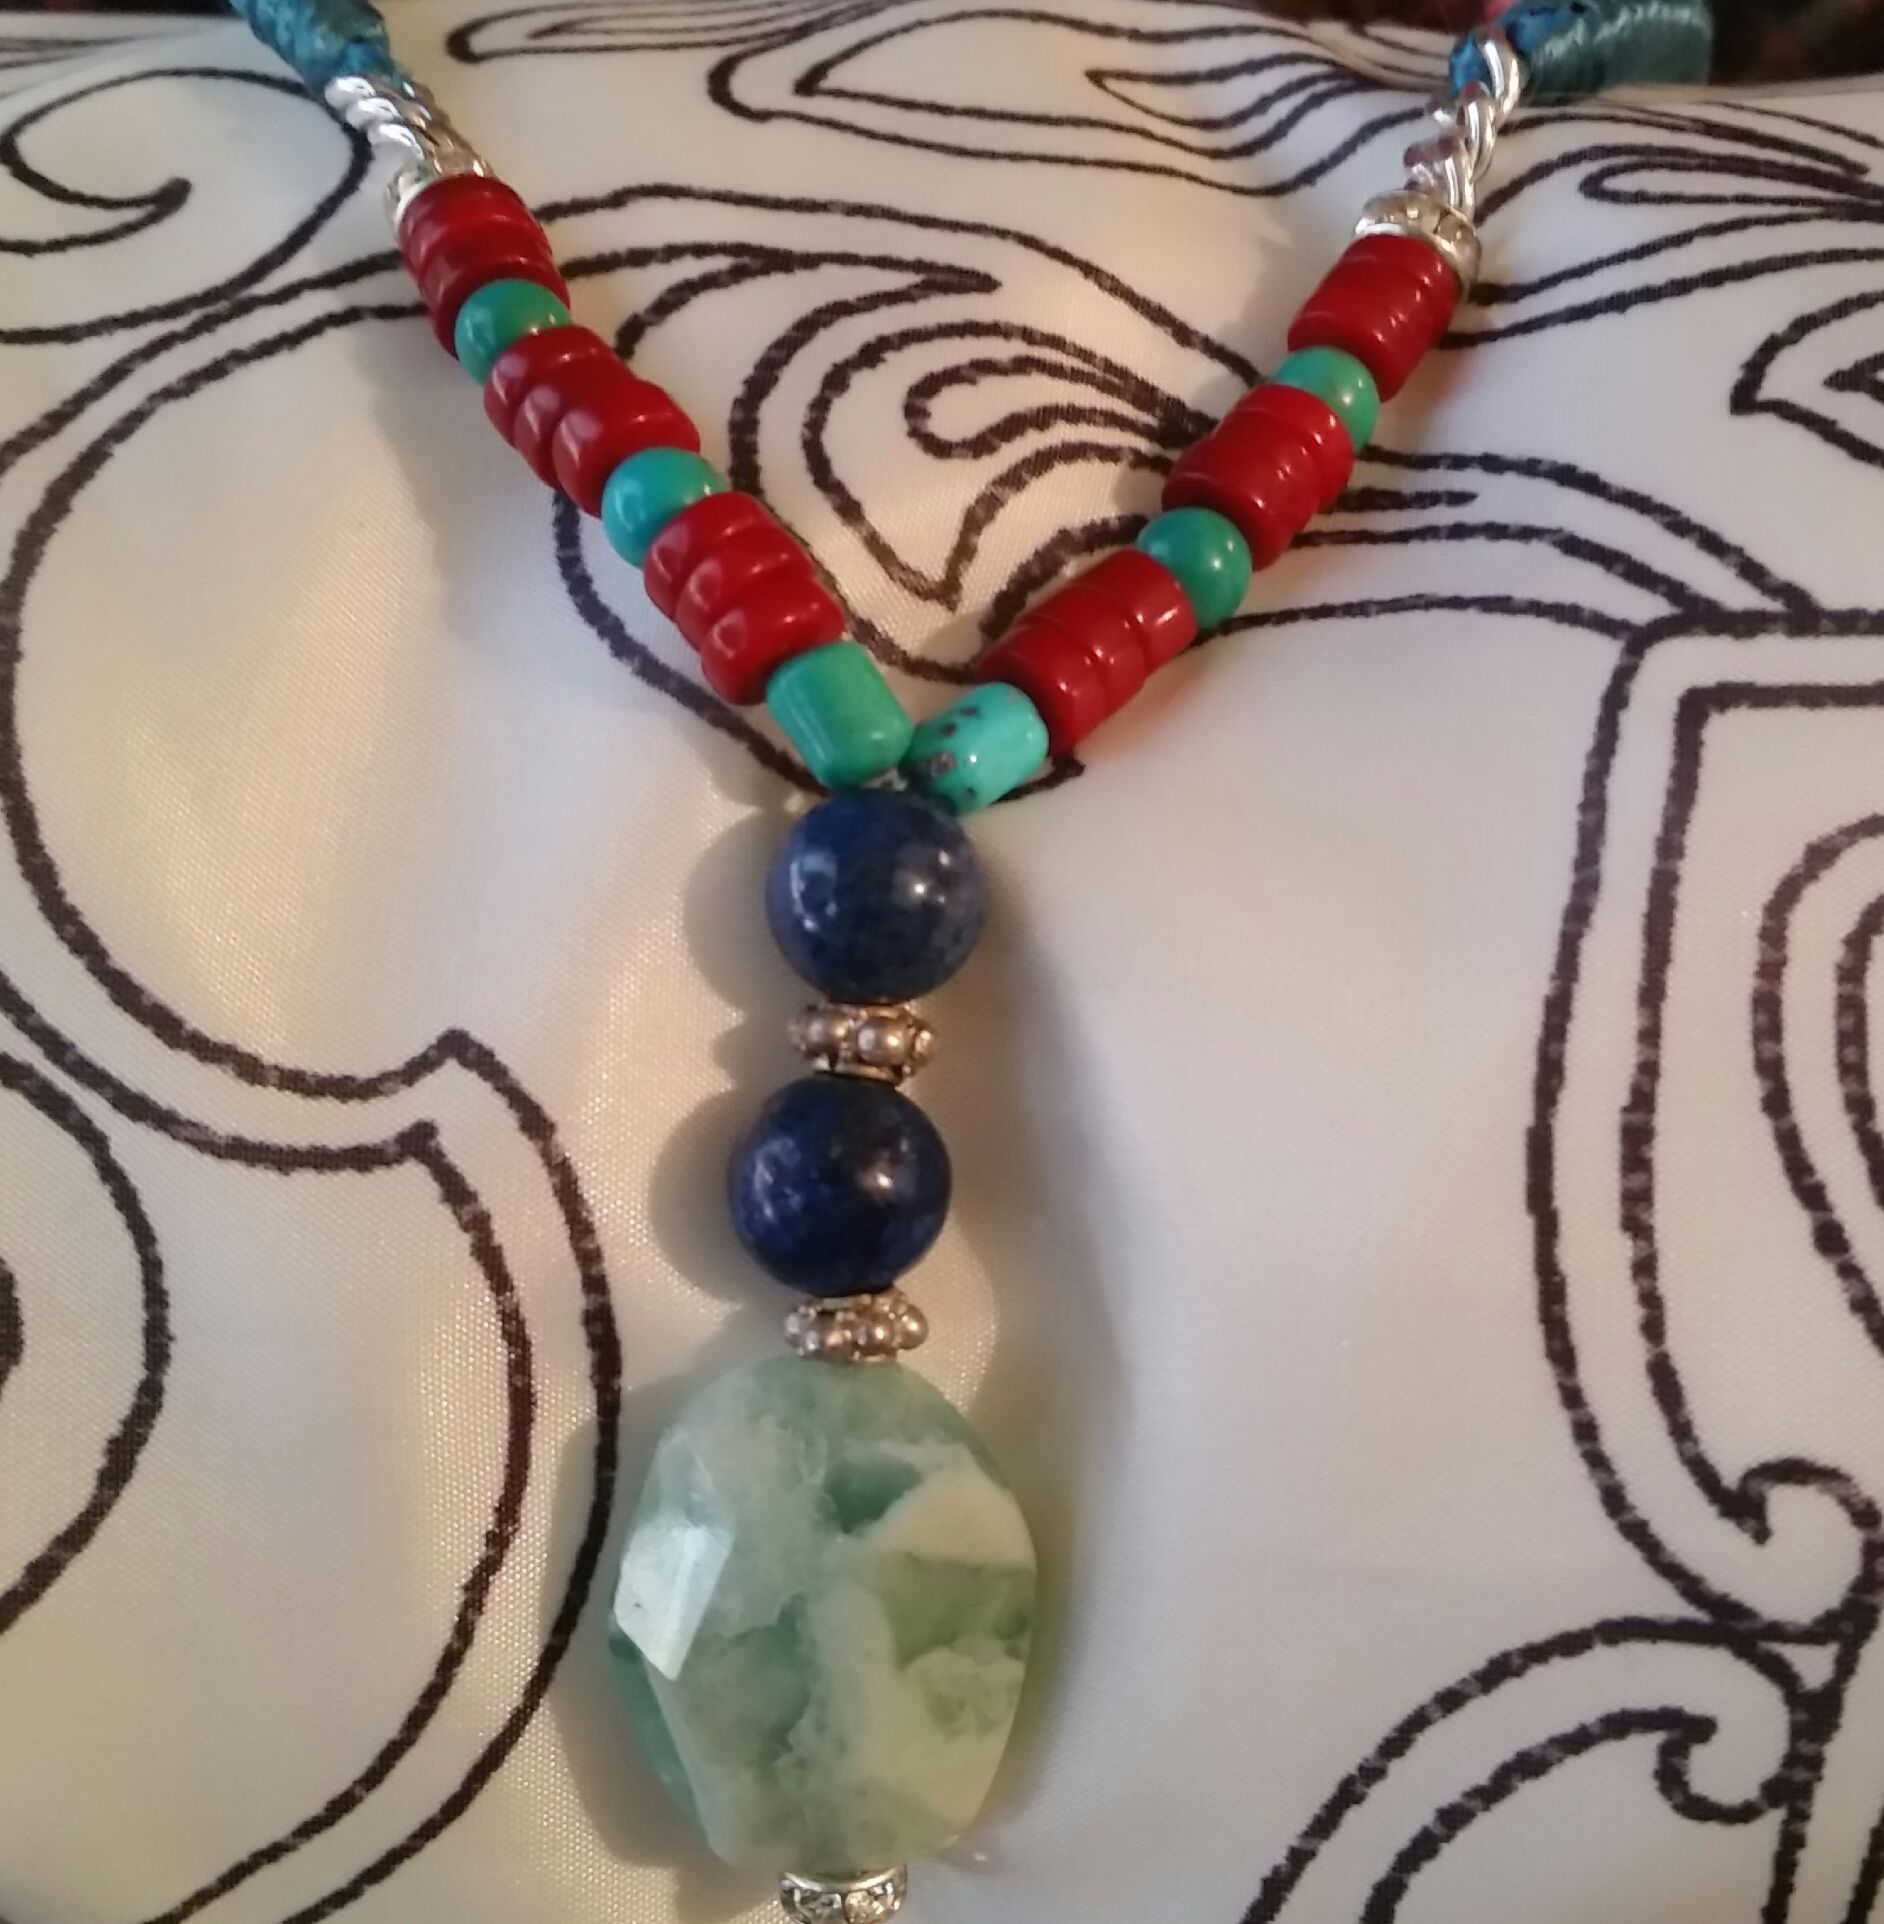 This necklace was created with ocean blue silky rope, natural coral, natural turquoise, lapis lazuli/bali silver spacers and an amazonite natural stone,